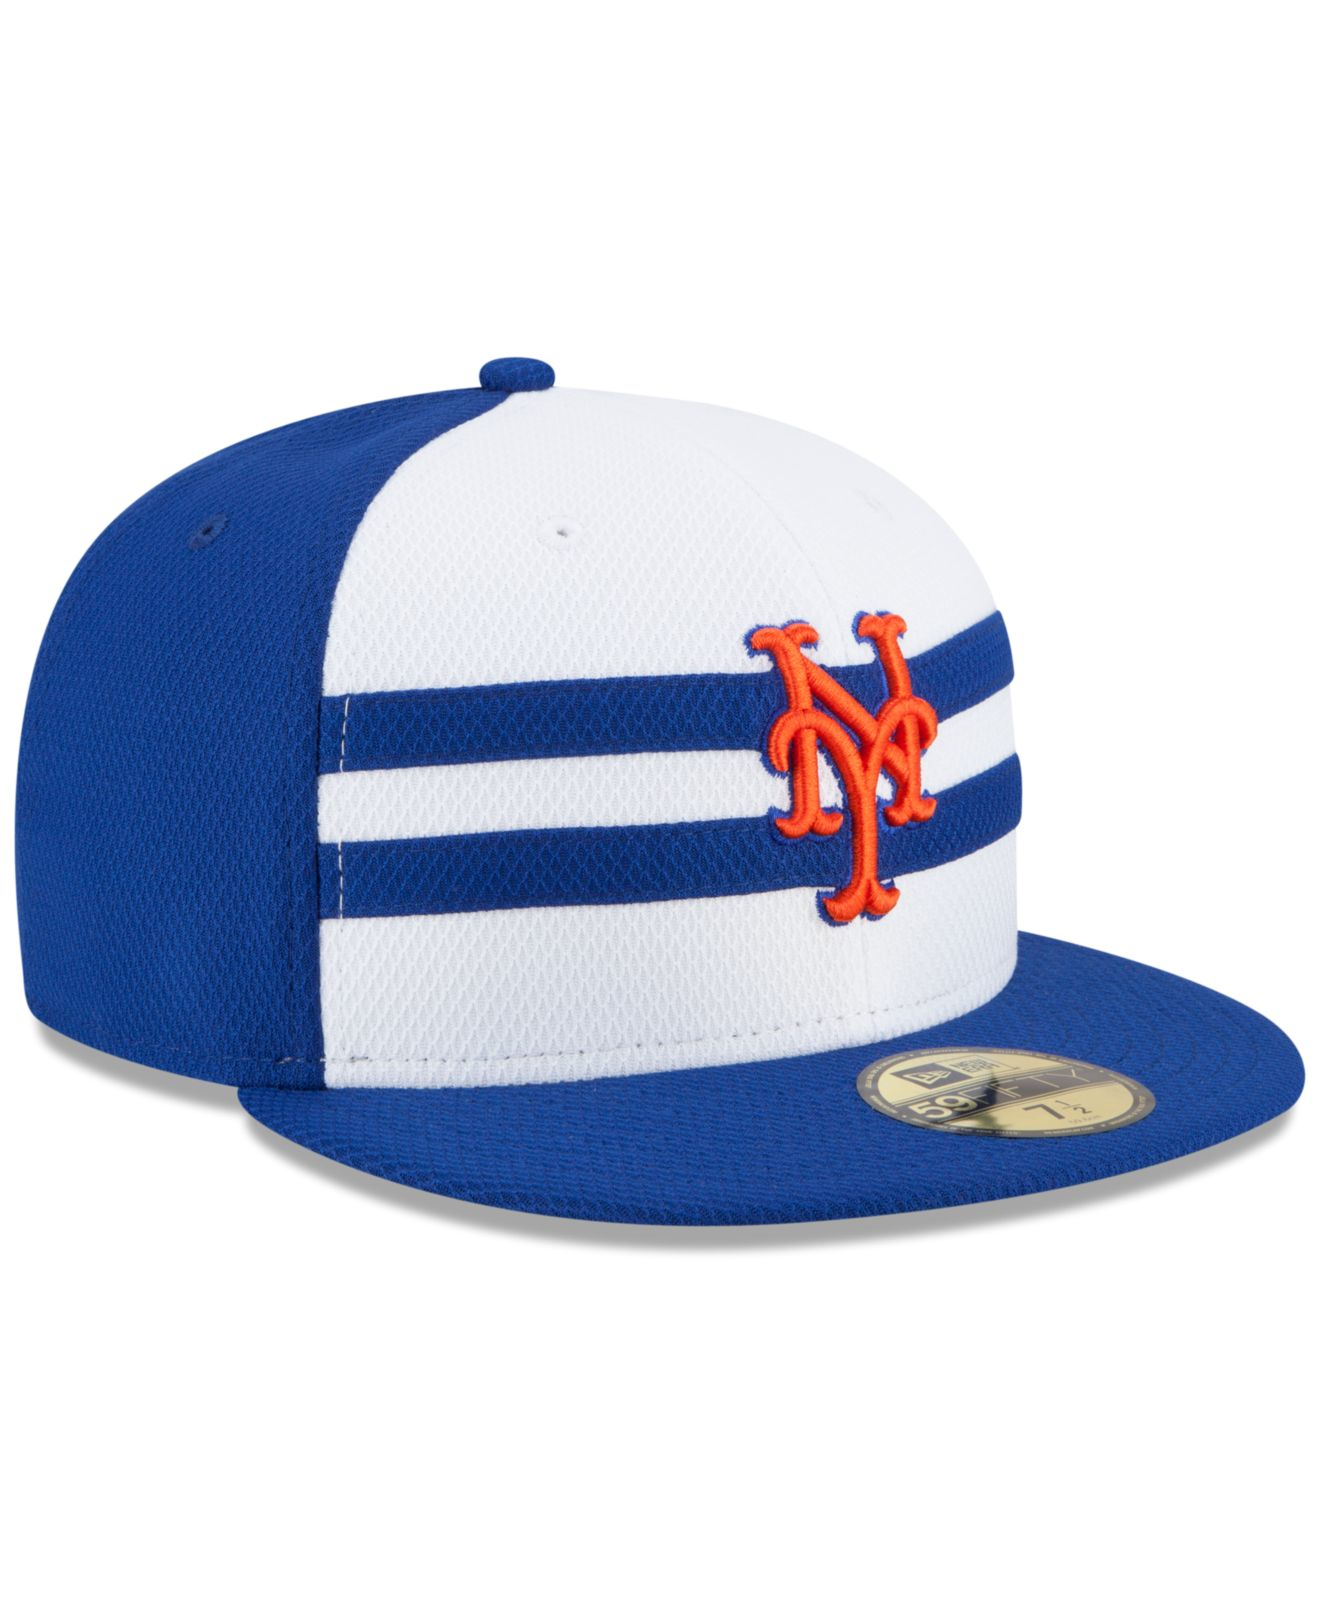 bb24bfd9053f6 official lyst ktz new york mets 2015 all star game 59fifty cap in blue for  men